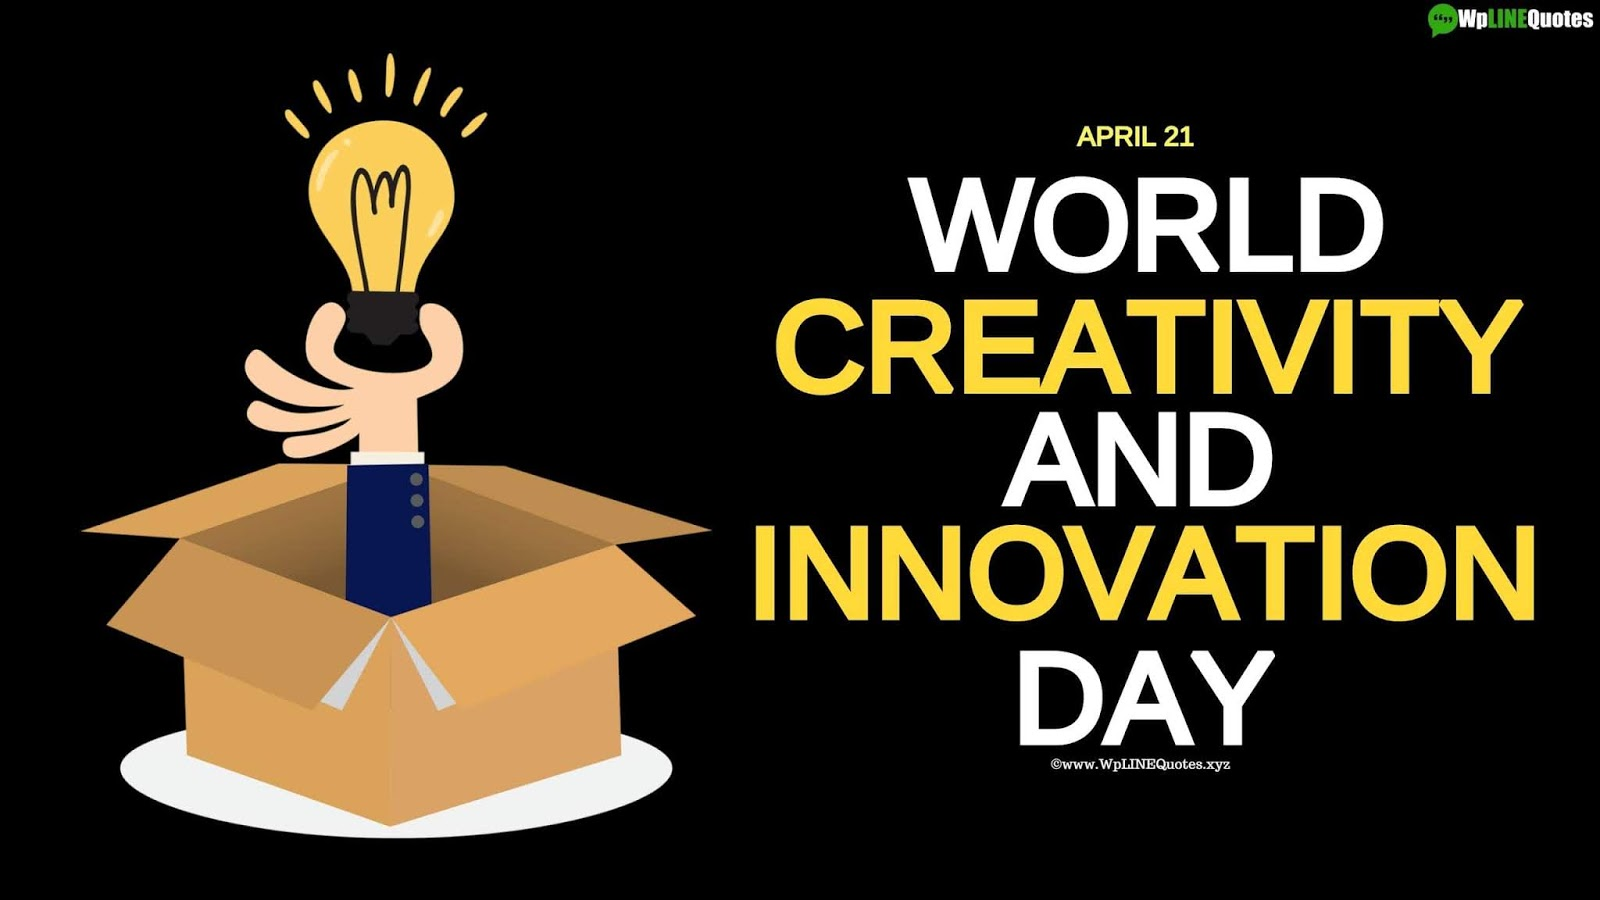 World Creativity and Innovation Day/Week Quotes, History, Activities, Images, Poster